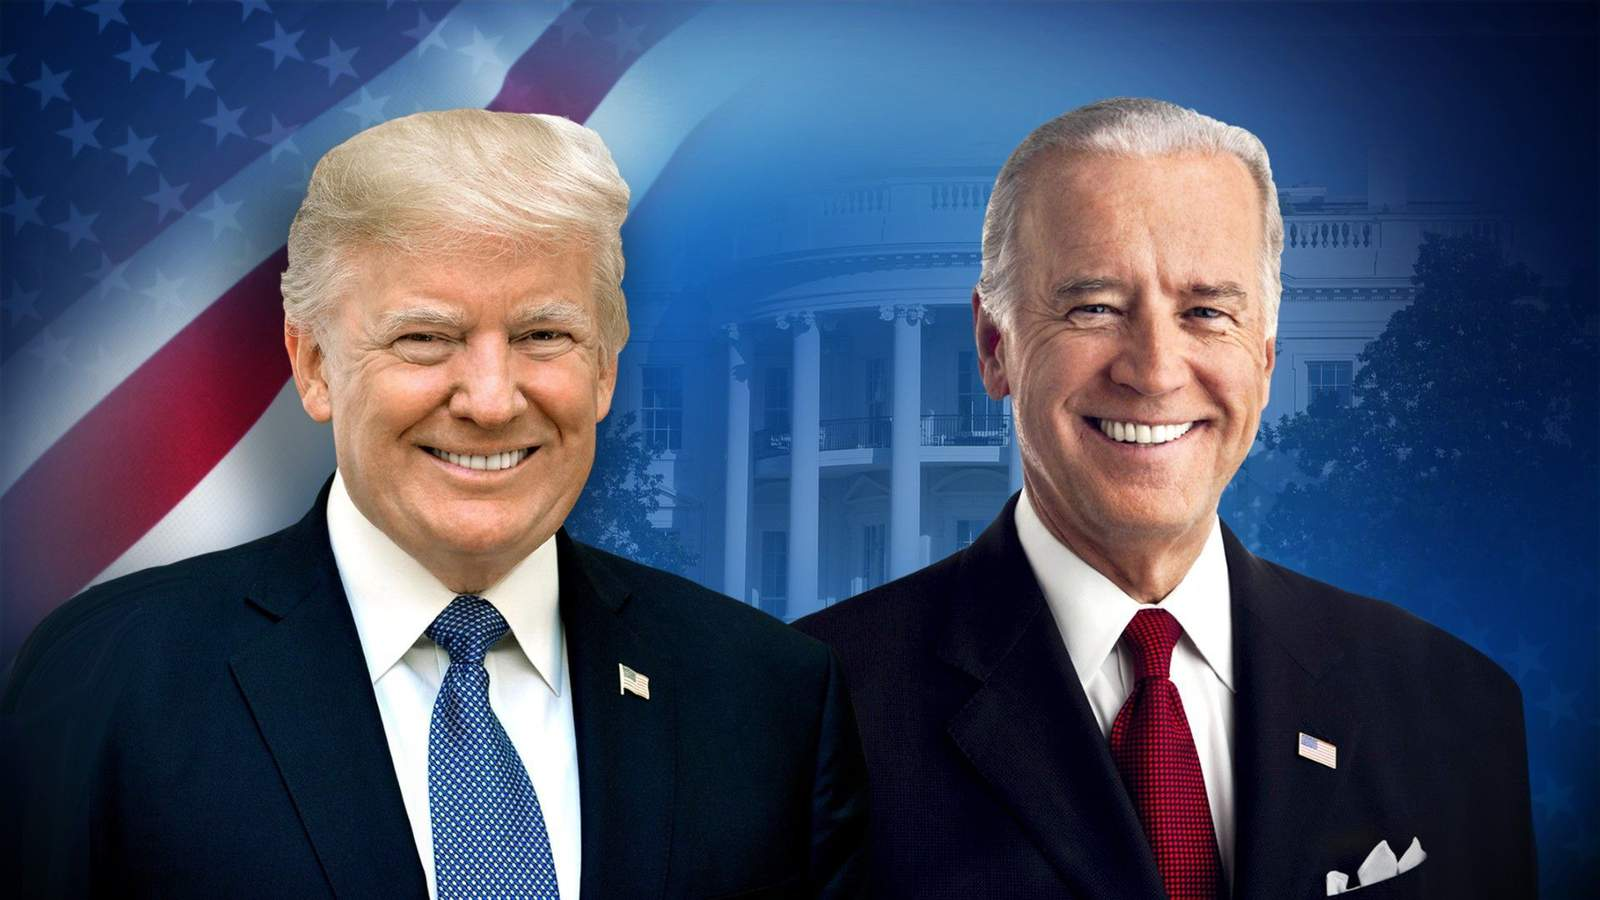 Watch : Coverage of Election Results for Trump, Biden and key Swing State Races